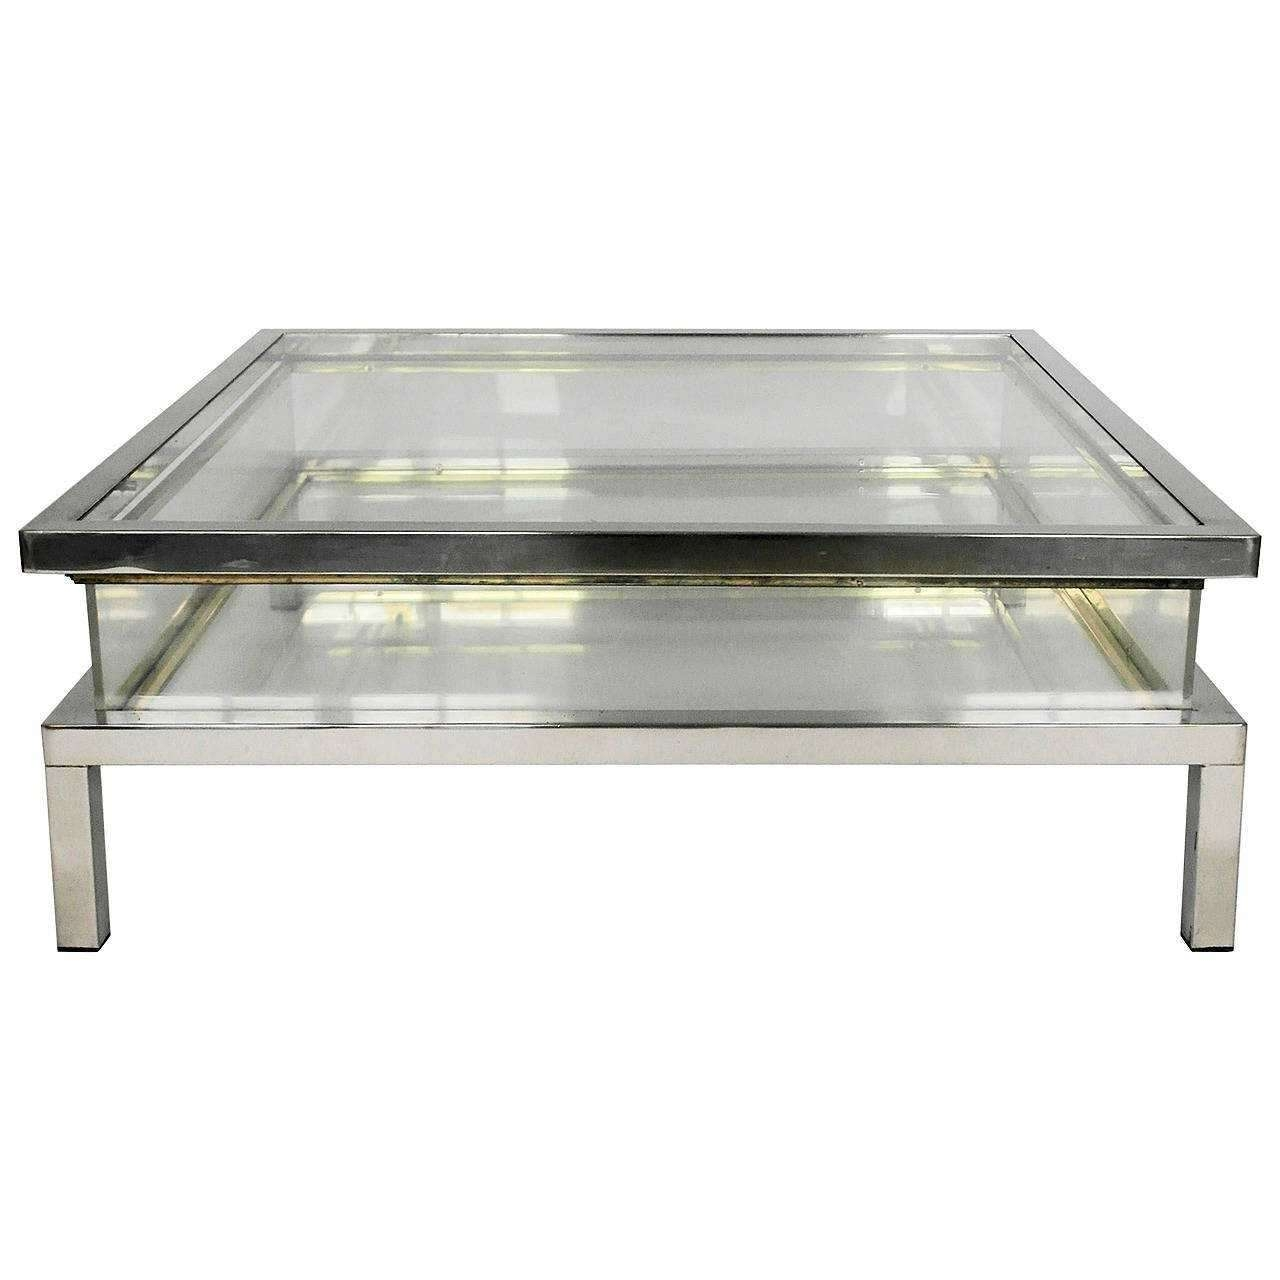 Preferred Chrome Coffee Tables Pertaining To Chrome Coffee Table (View 8 of 20)